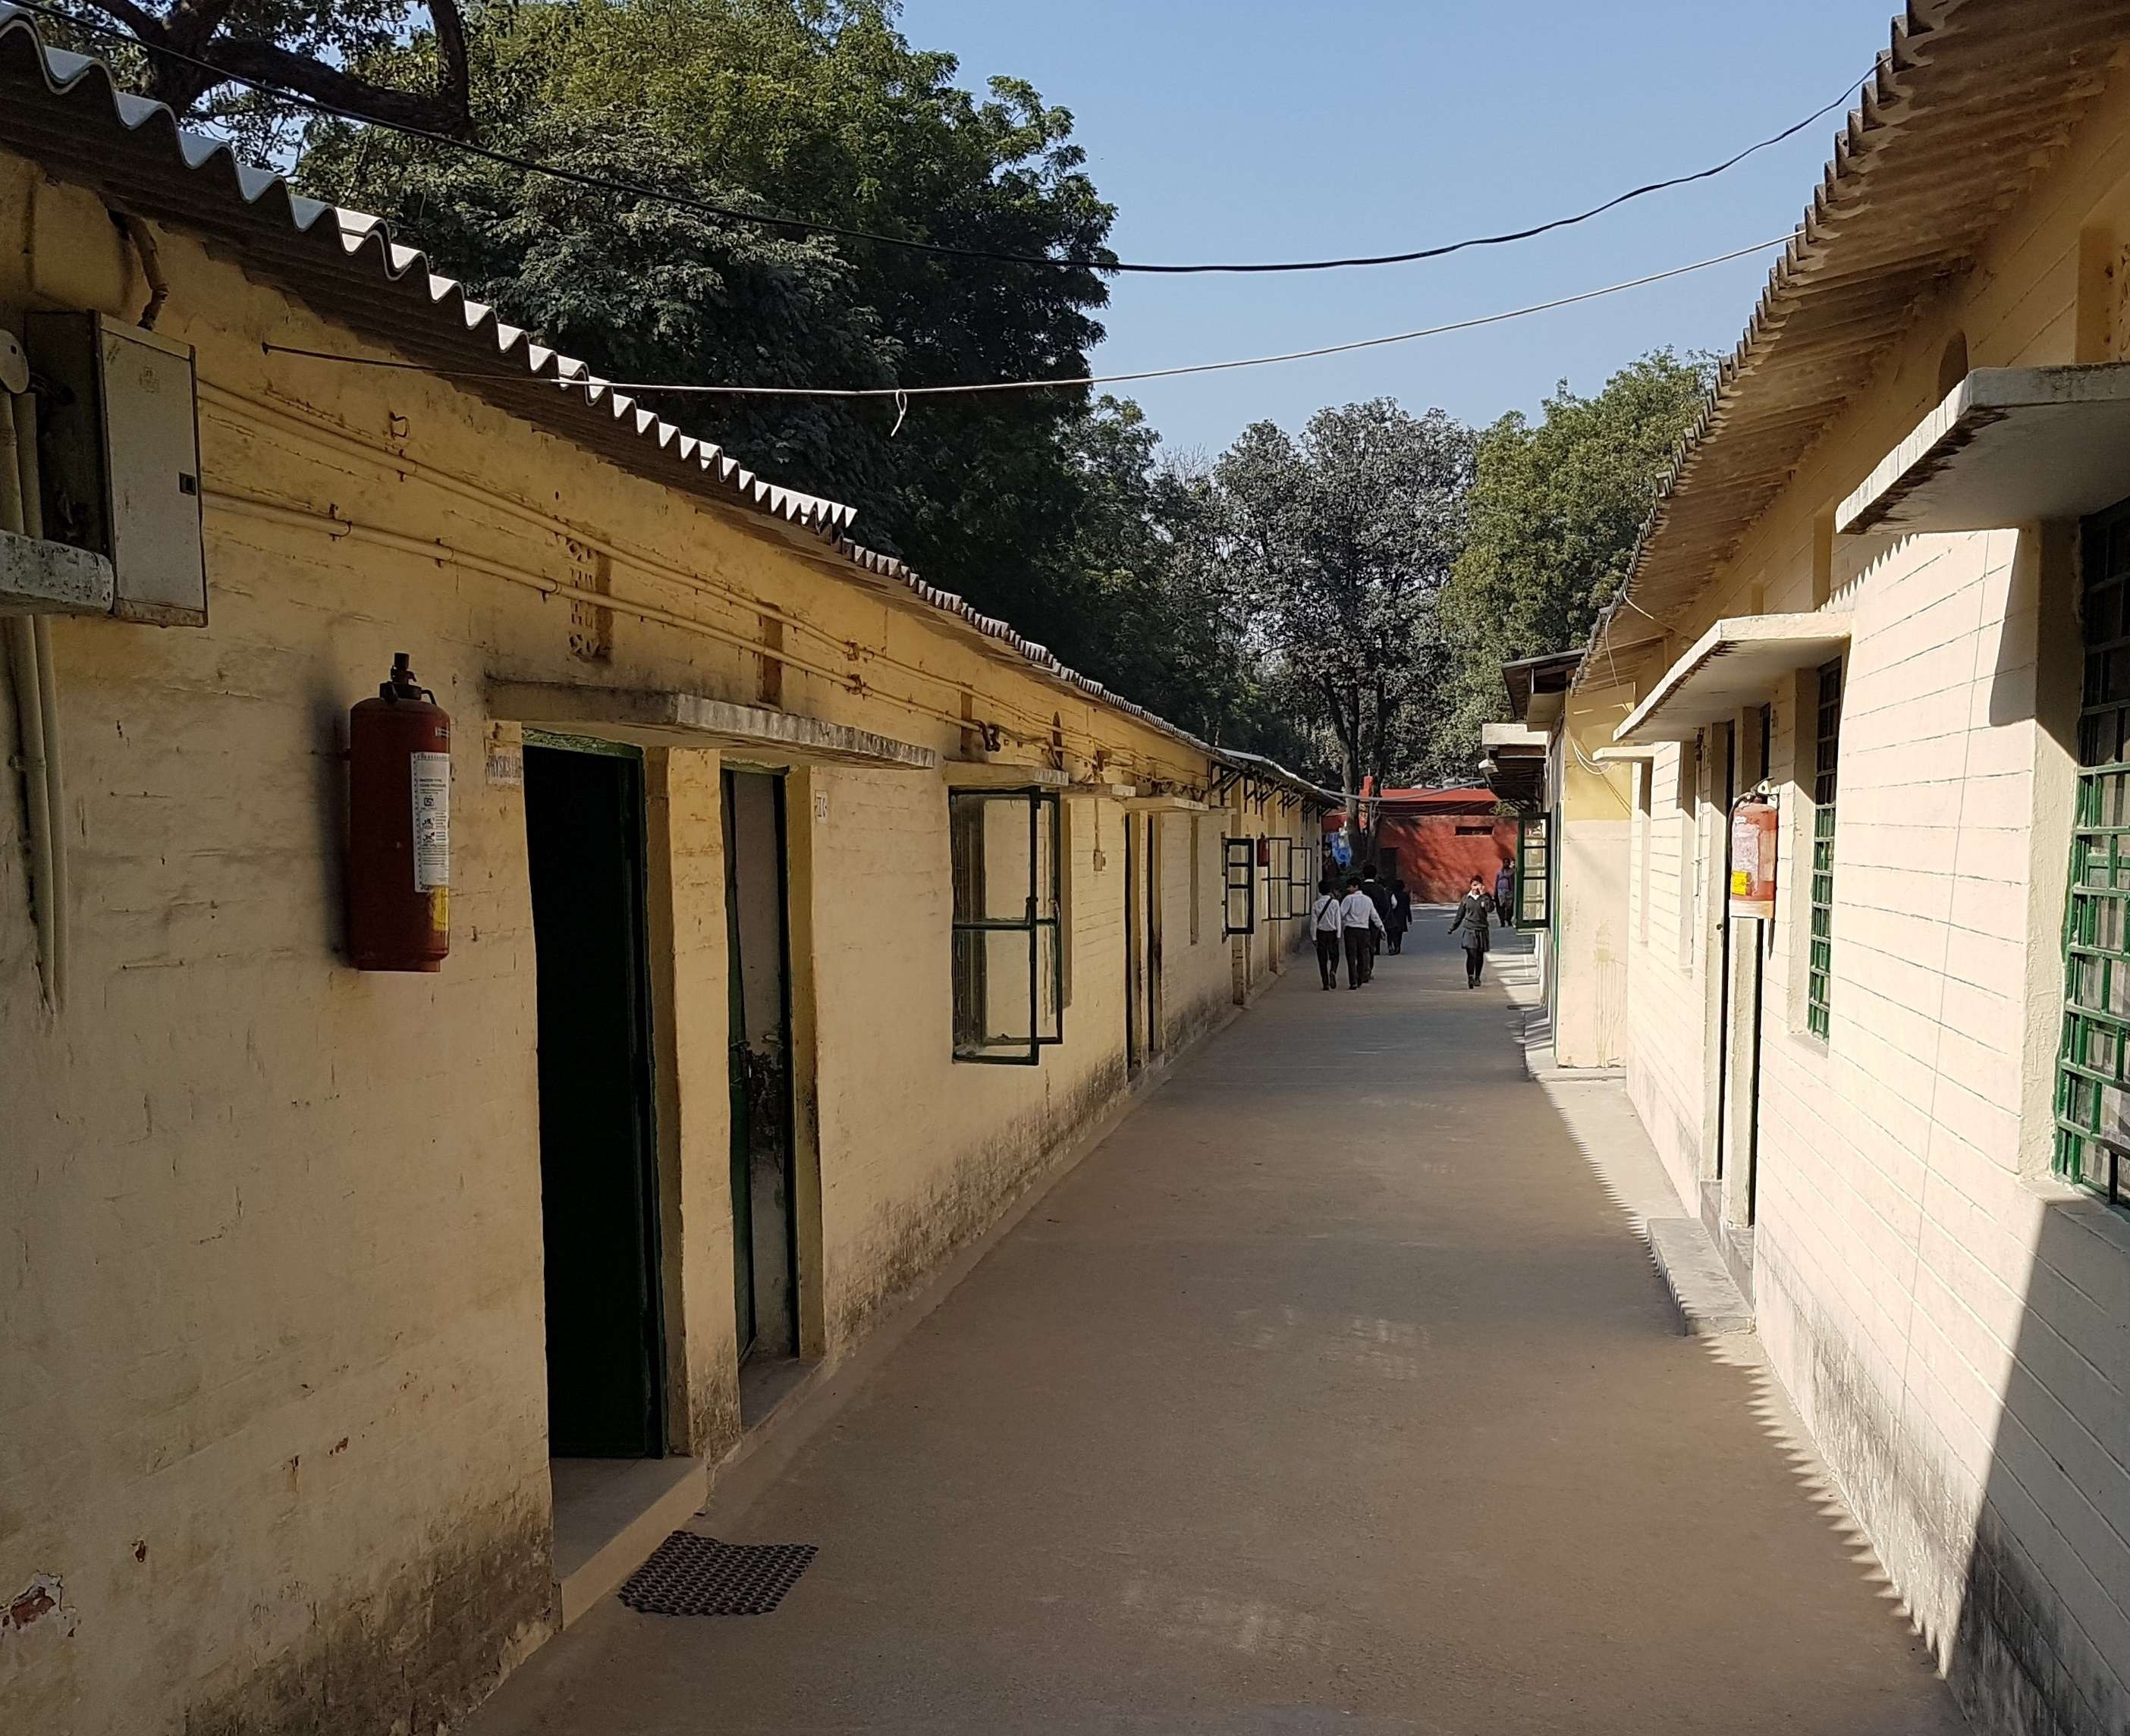 ST. MARTIN'S DIOCESAN SCHOOL CHURCH ROAD DELHI CANTT - The Learning Point